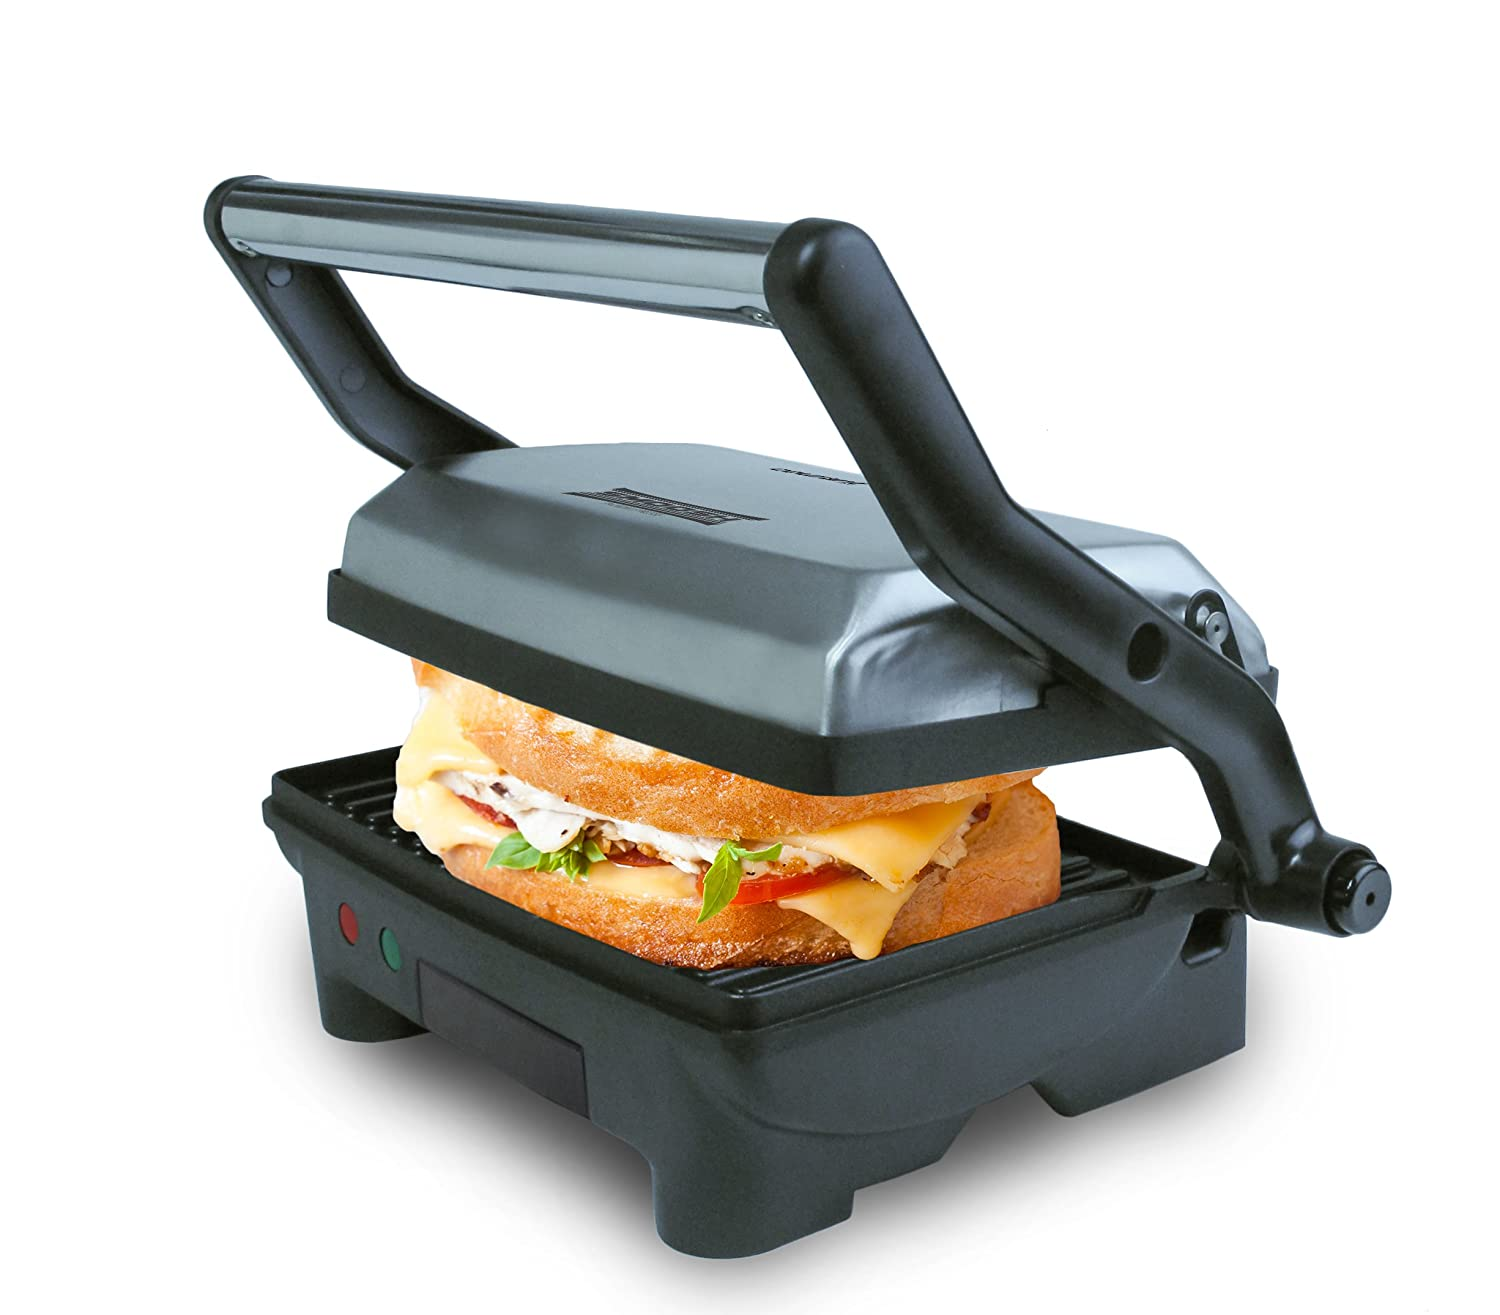 Courant CPP-2100 2-Serving Panini Press and Sandwich Griddler with Non-stick Coated Plates, Indoor grill